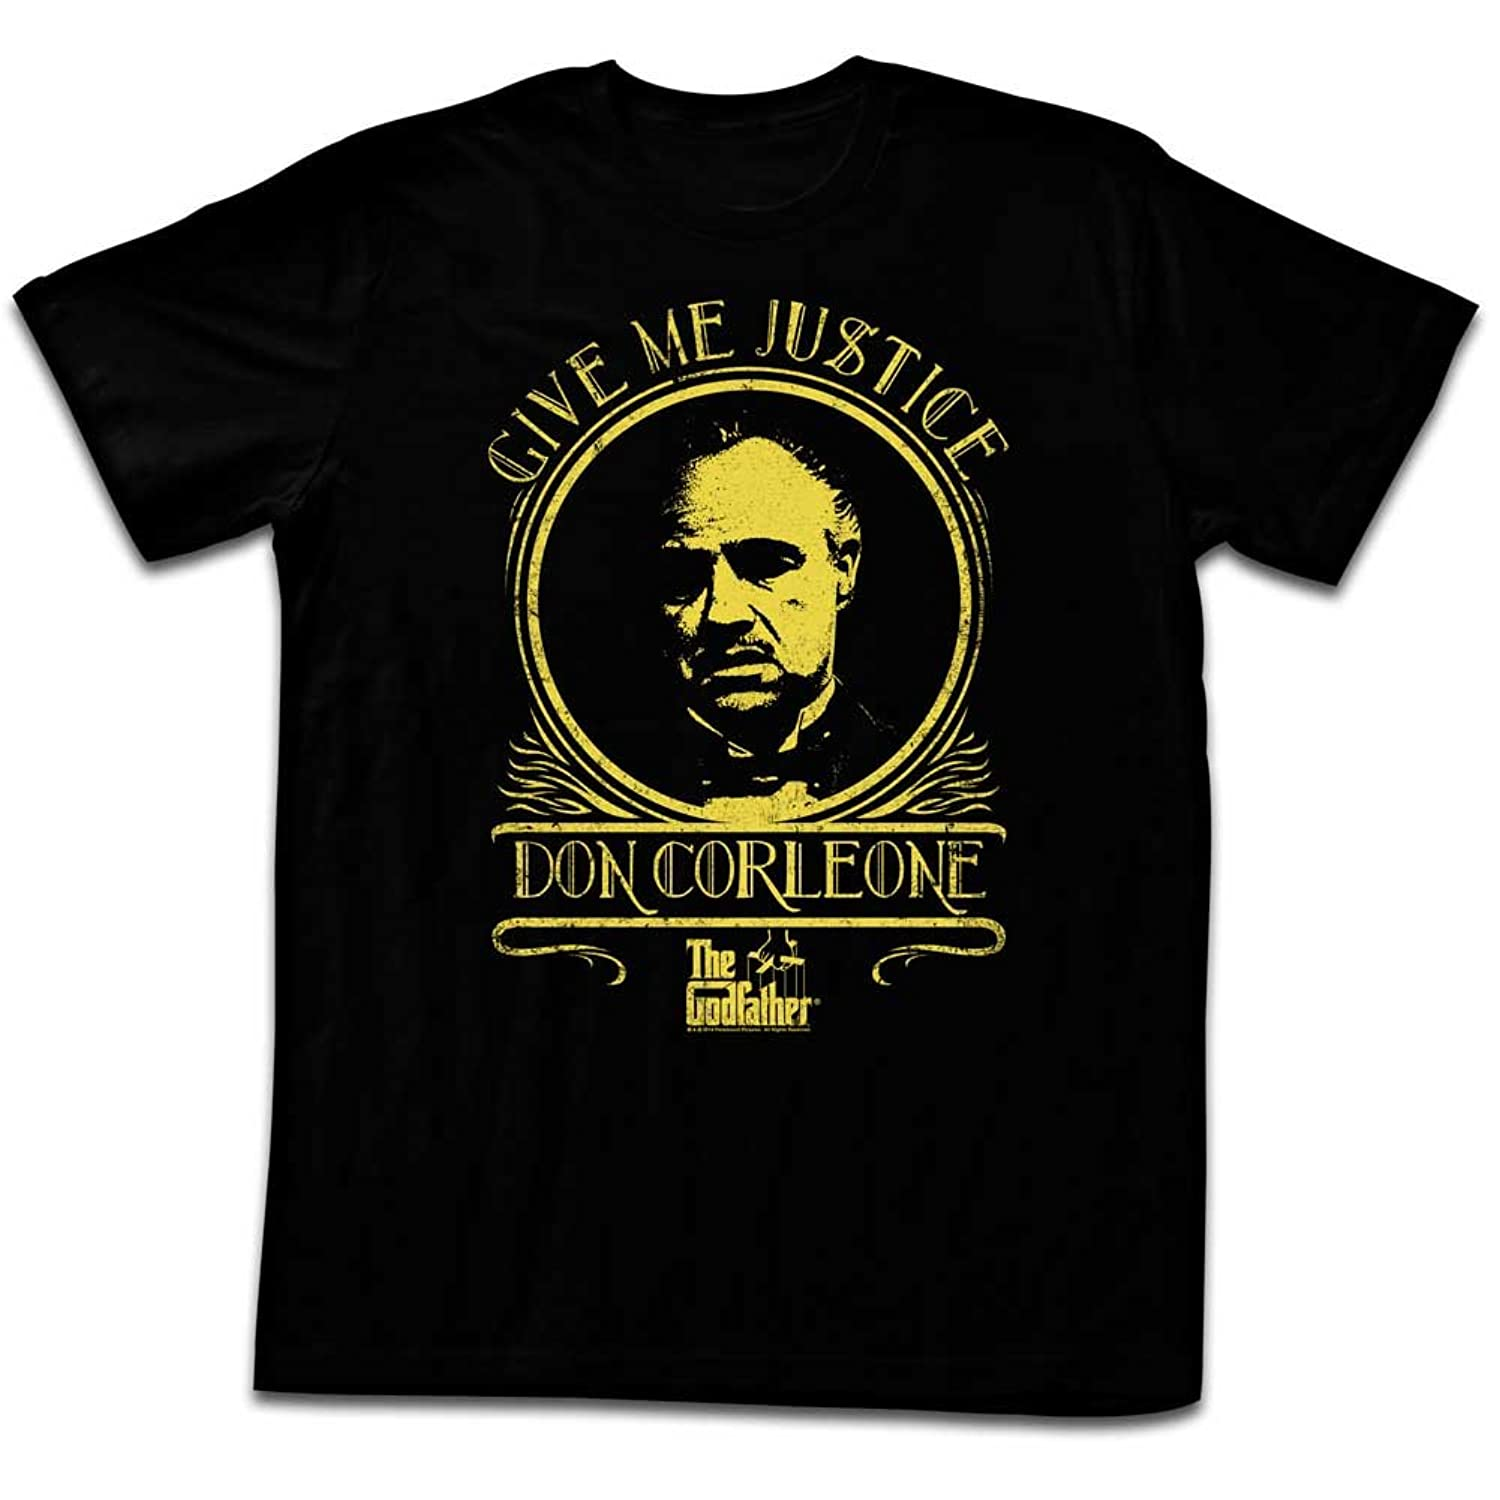 Godfather - Mens Justice T-Shirt